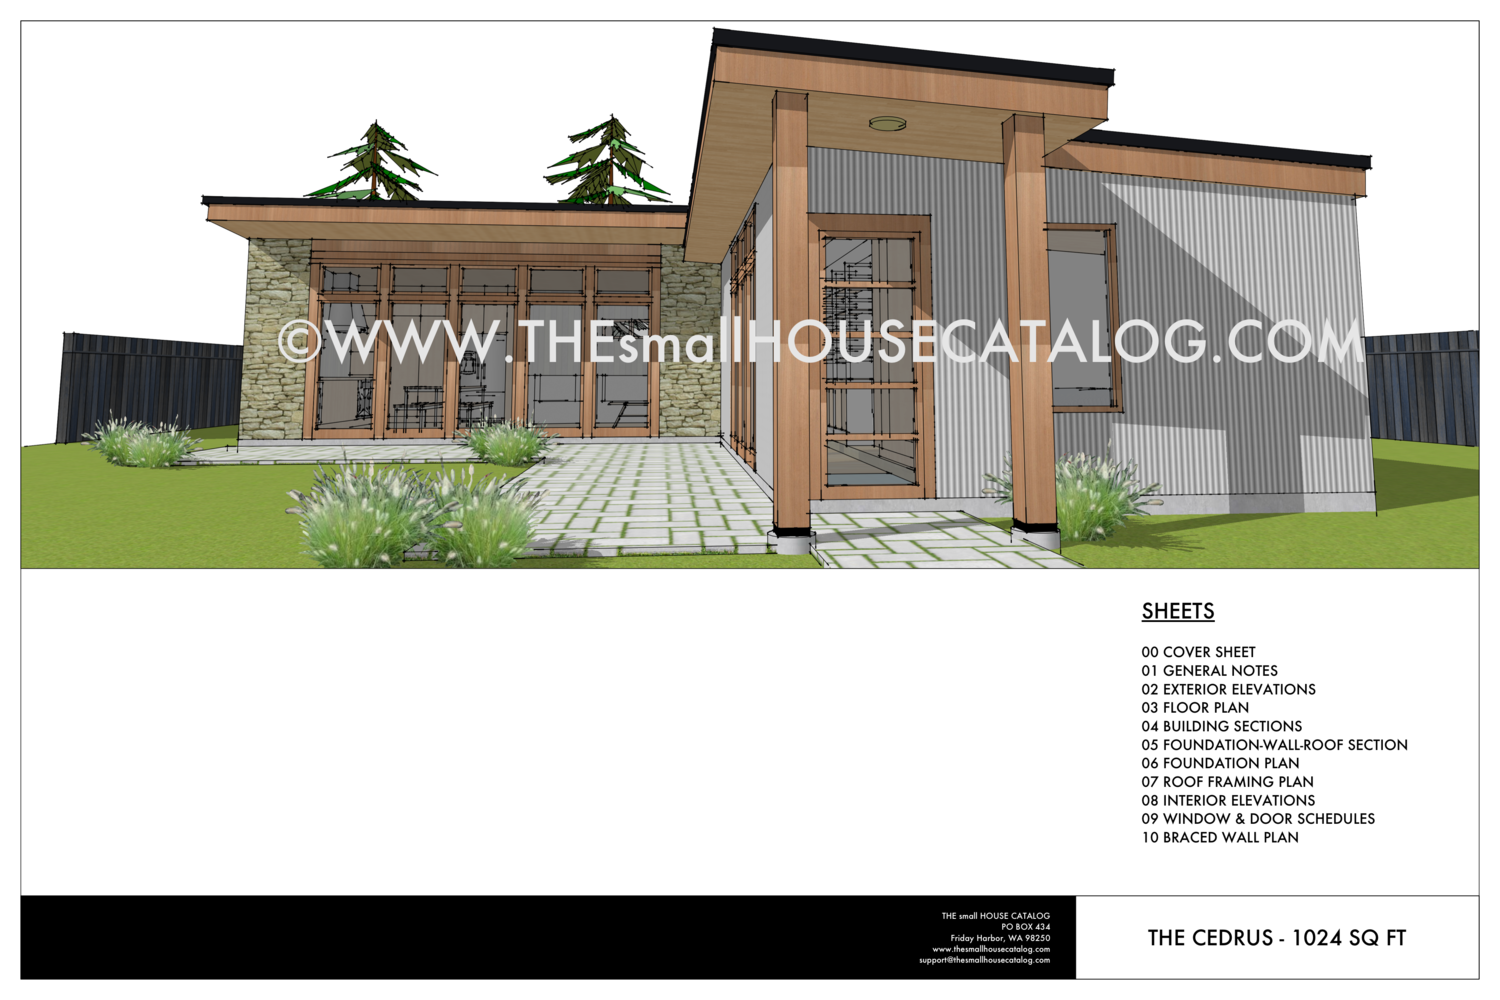 Modern shed style house plans modern house Small shed roof house plans